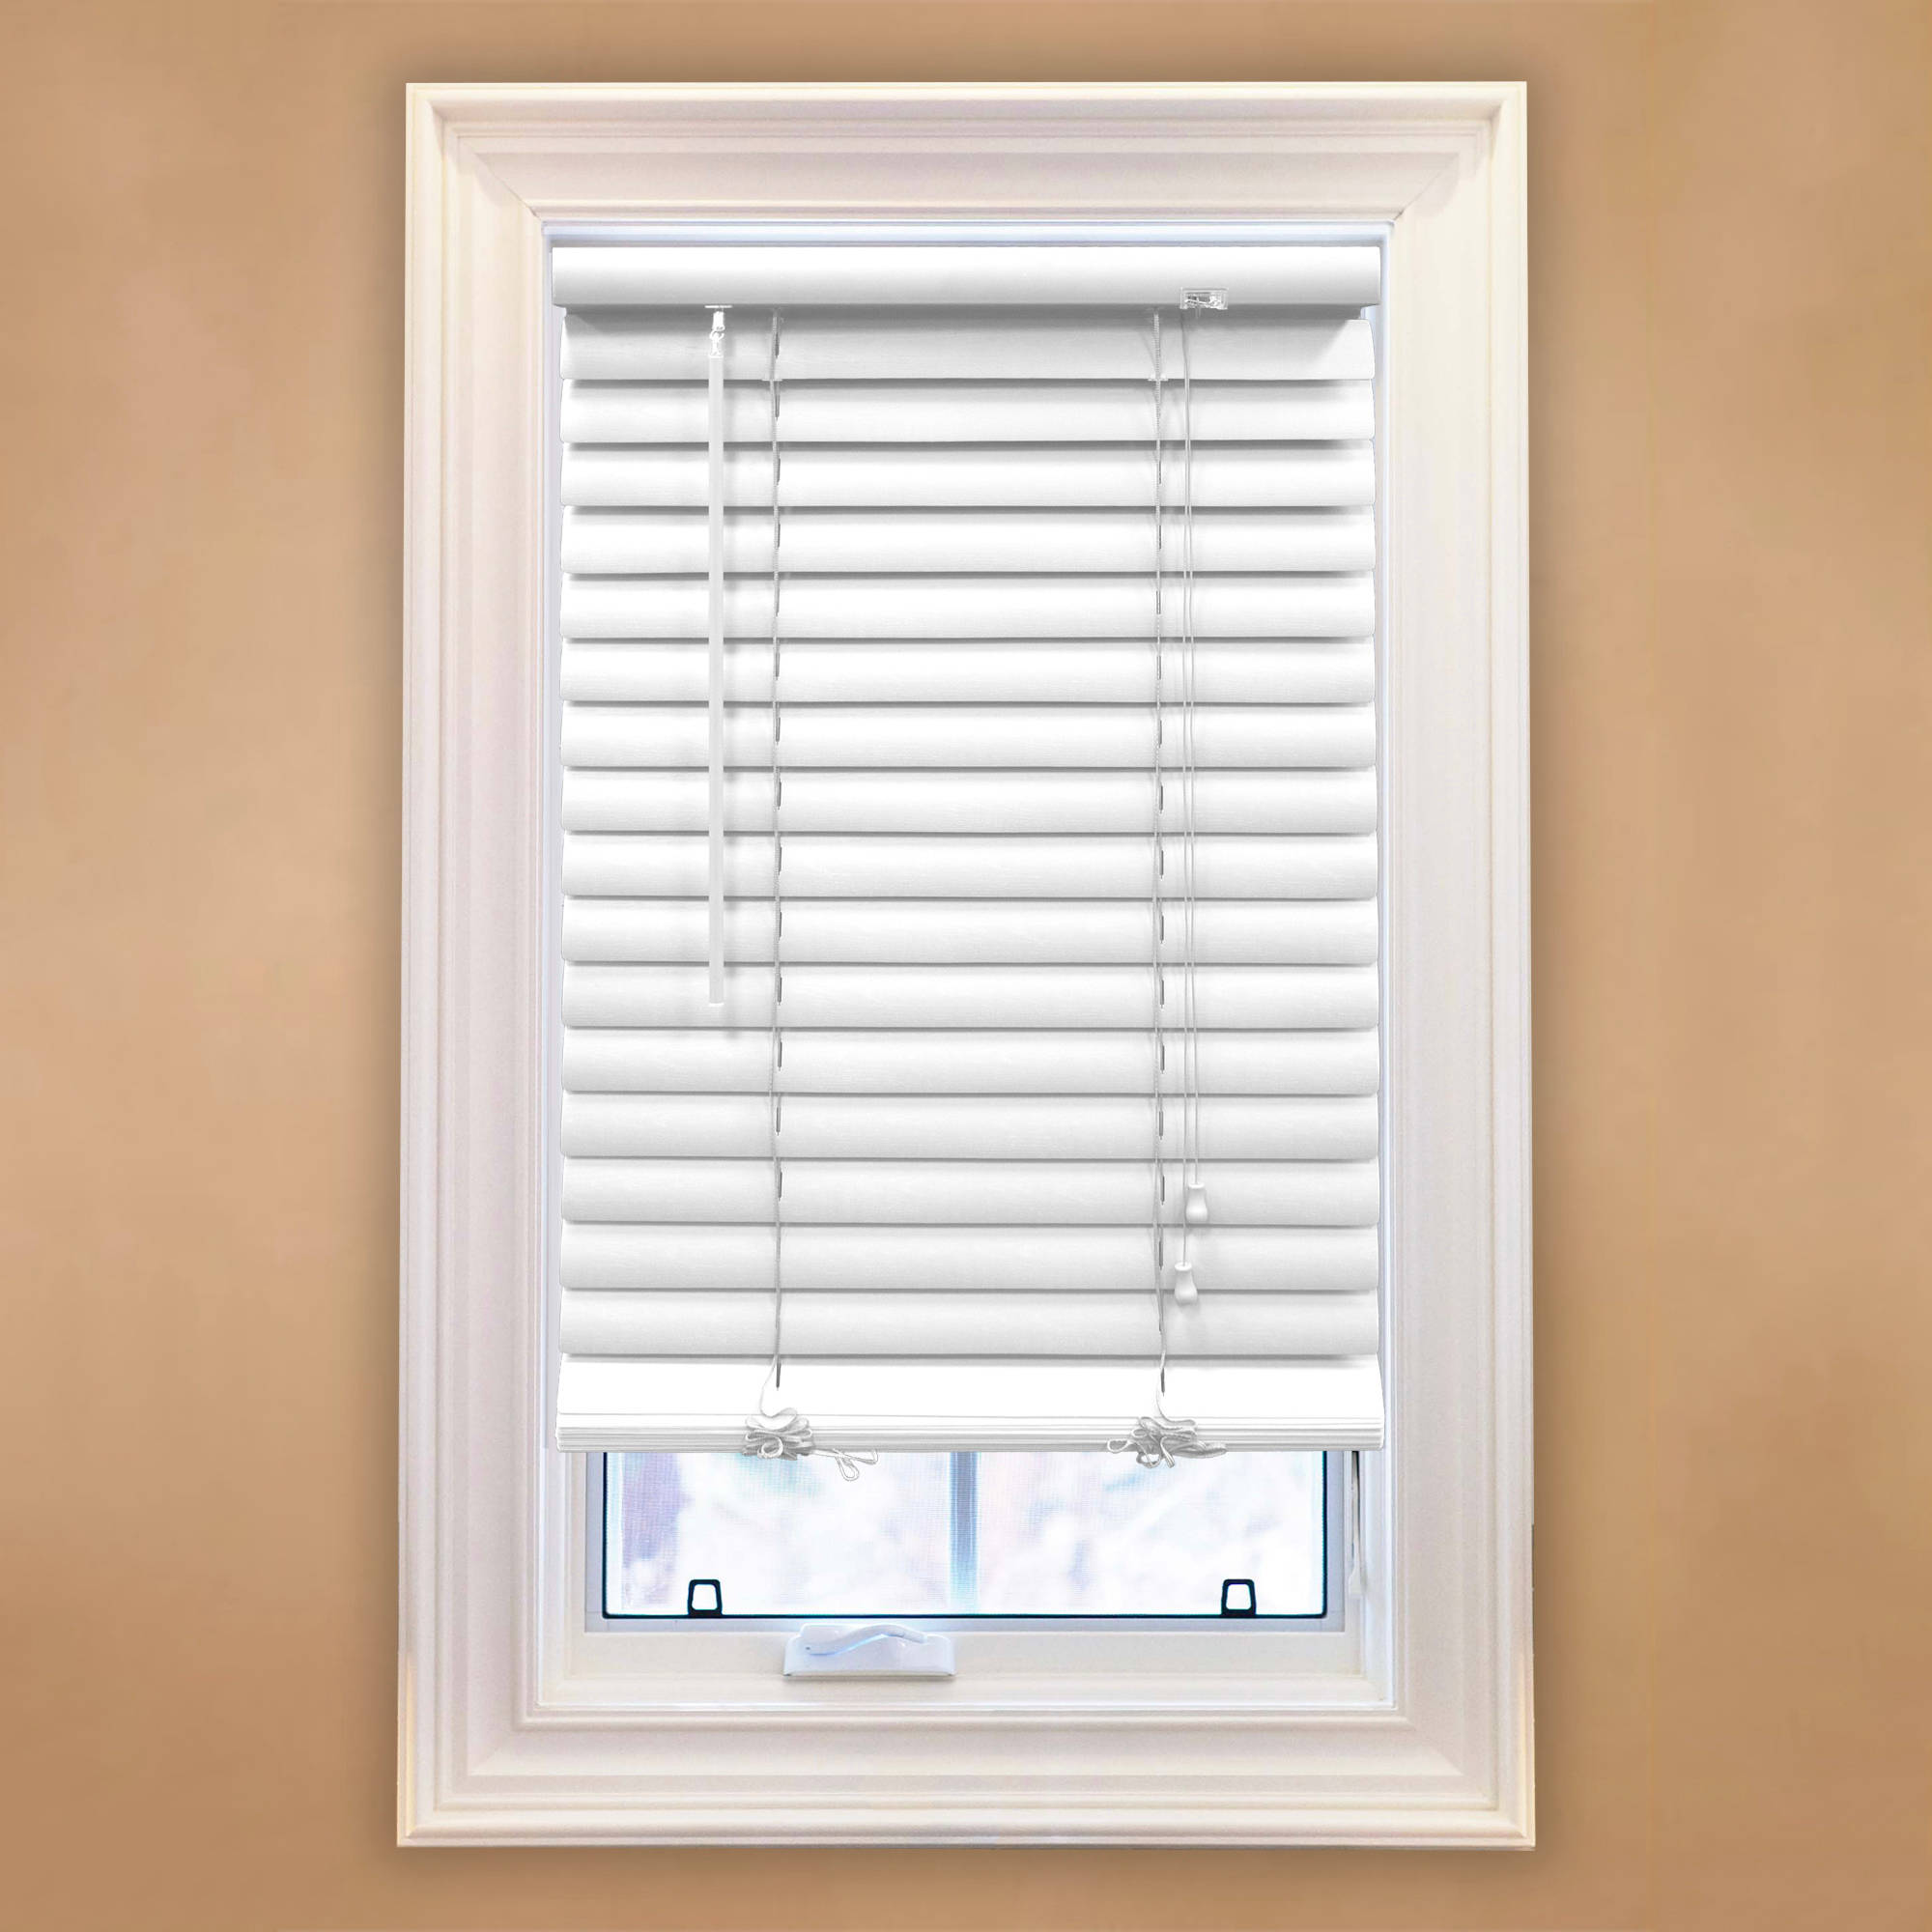 Window blinds for sale window shade price list brands amp review - Window Blinds For Sale Window Shade Price List Brands Amp Review 16